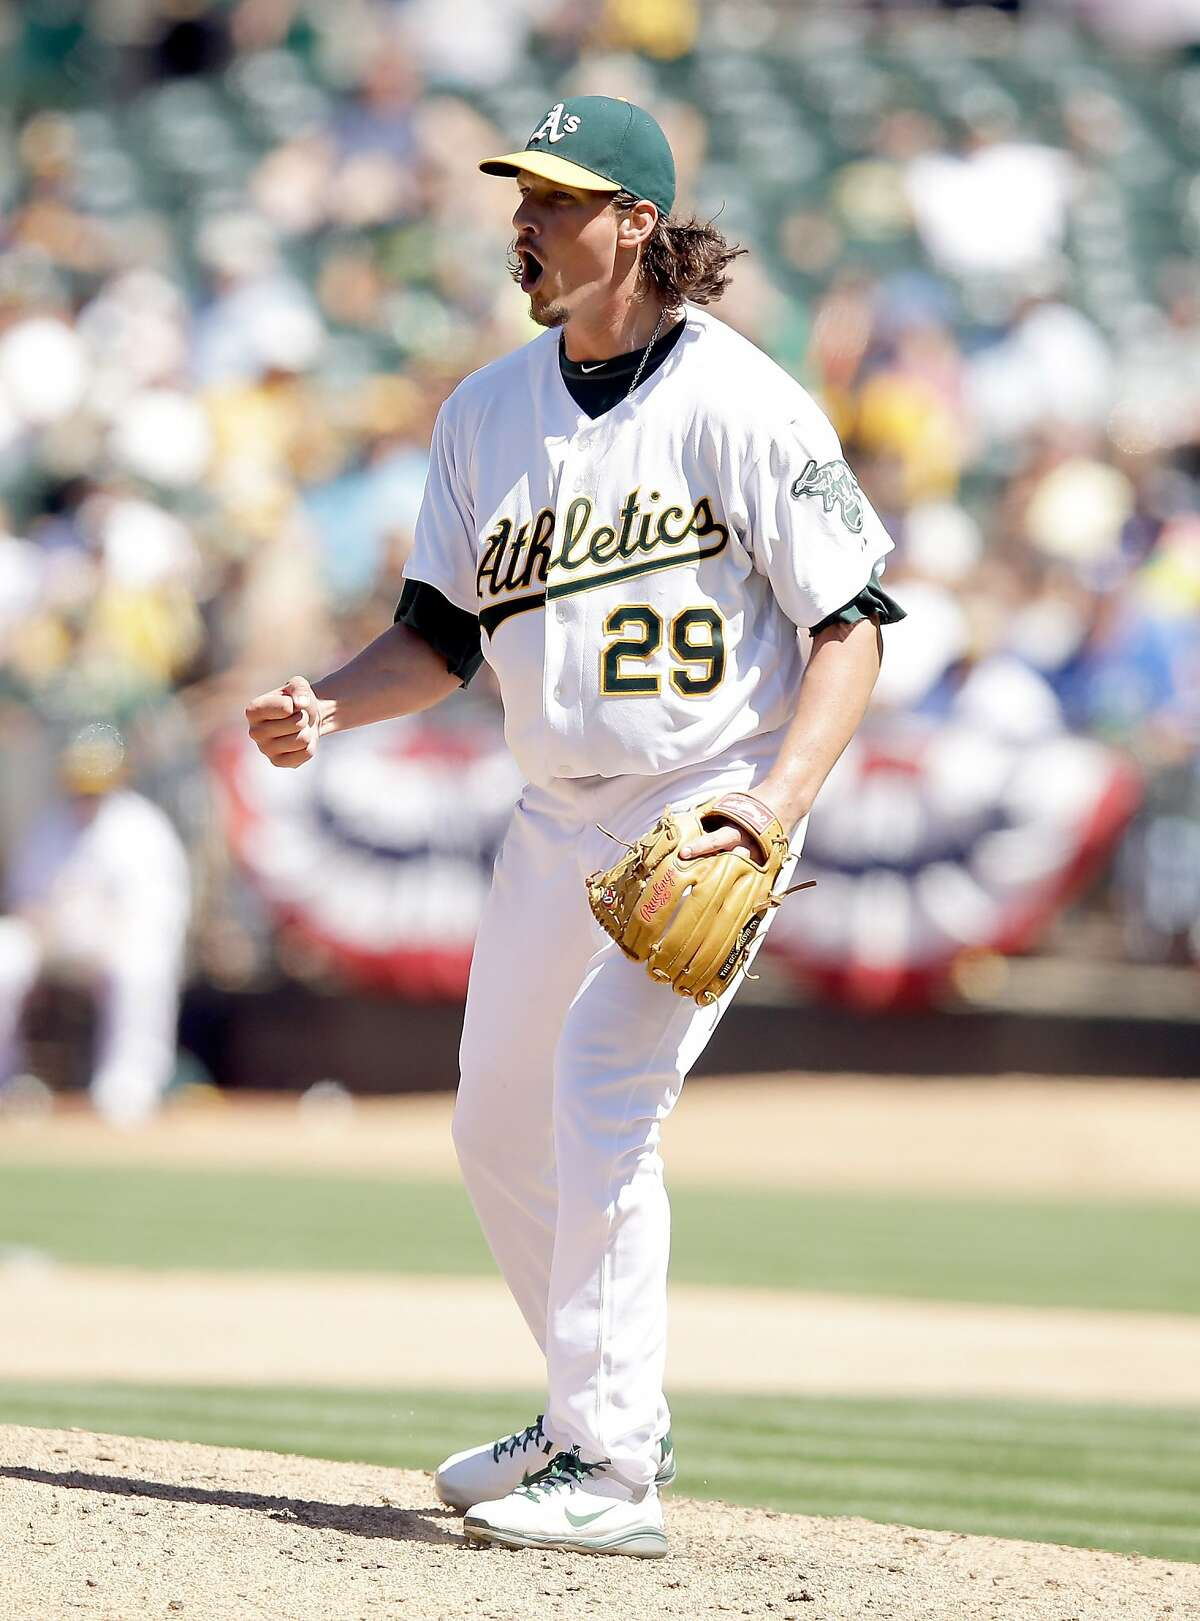 OAKLAND, CA - JULY 06: Jeff Samardzija #29 of the Oakland Athletics reacts after he struck out three batters in a row in the seventh inning of their game against the Toronto Blue Jays at O.co Coliseum on July 6, 2014 in Oakland, California. (Photo by Ezra Shaw/Getty Images)